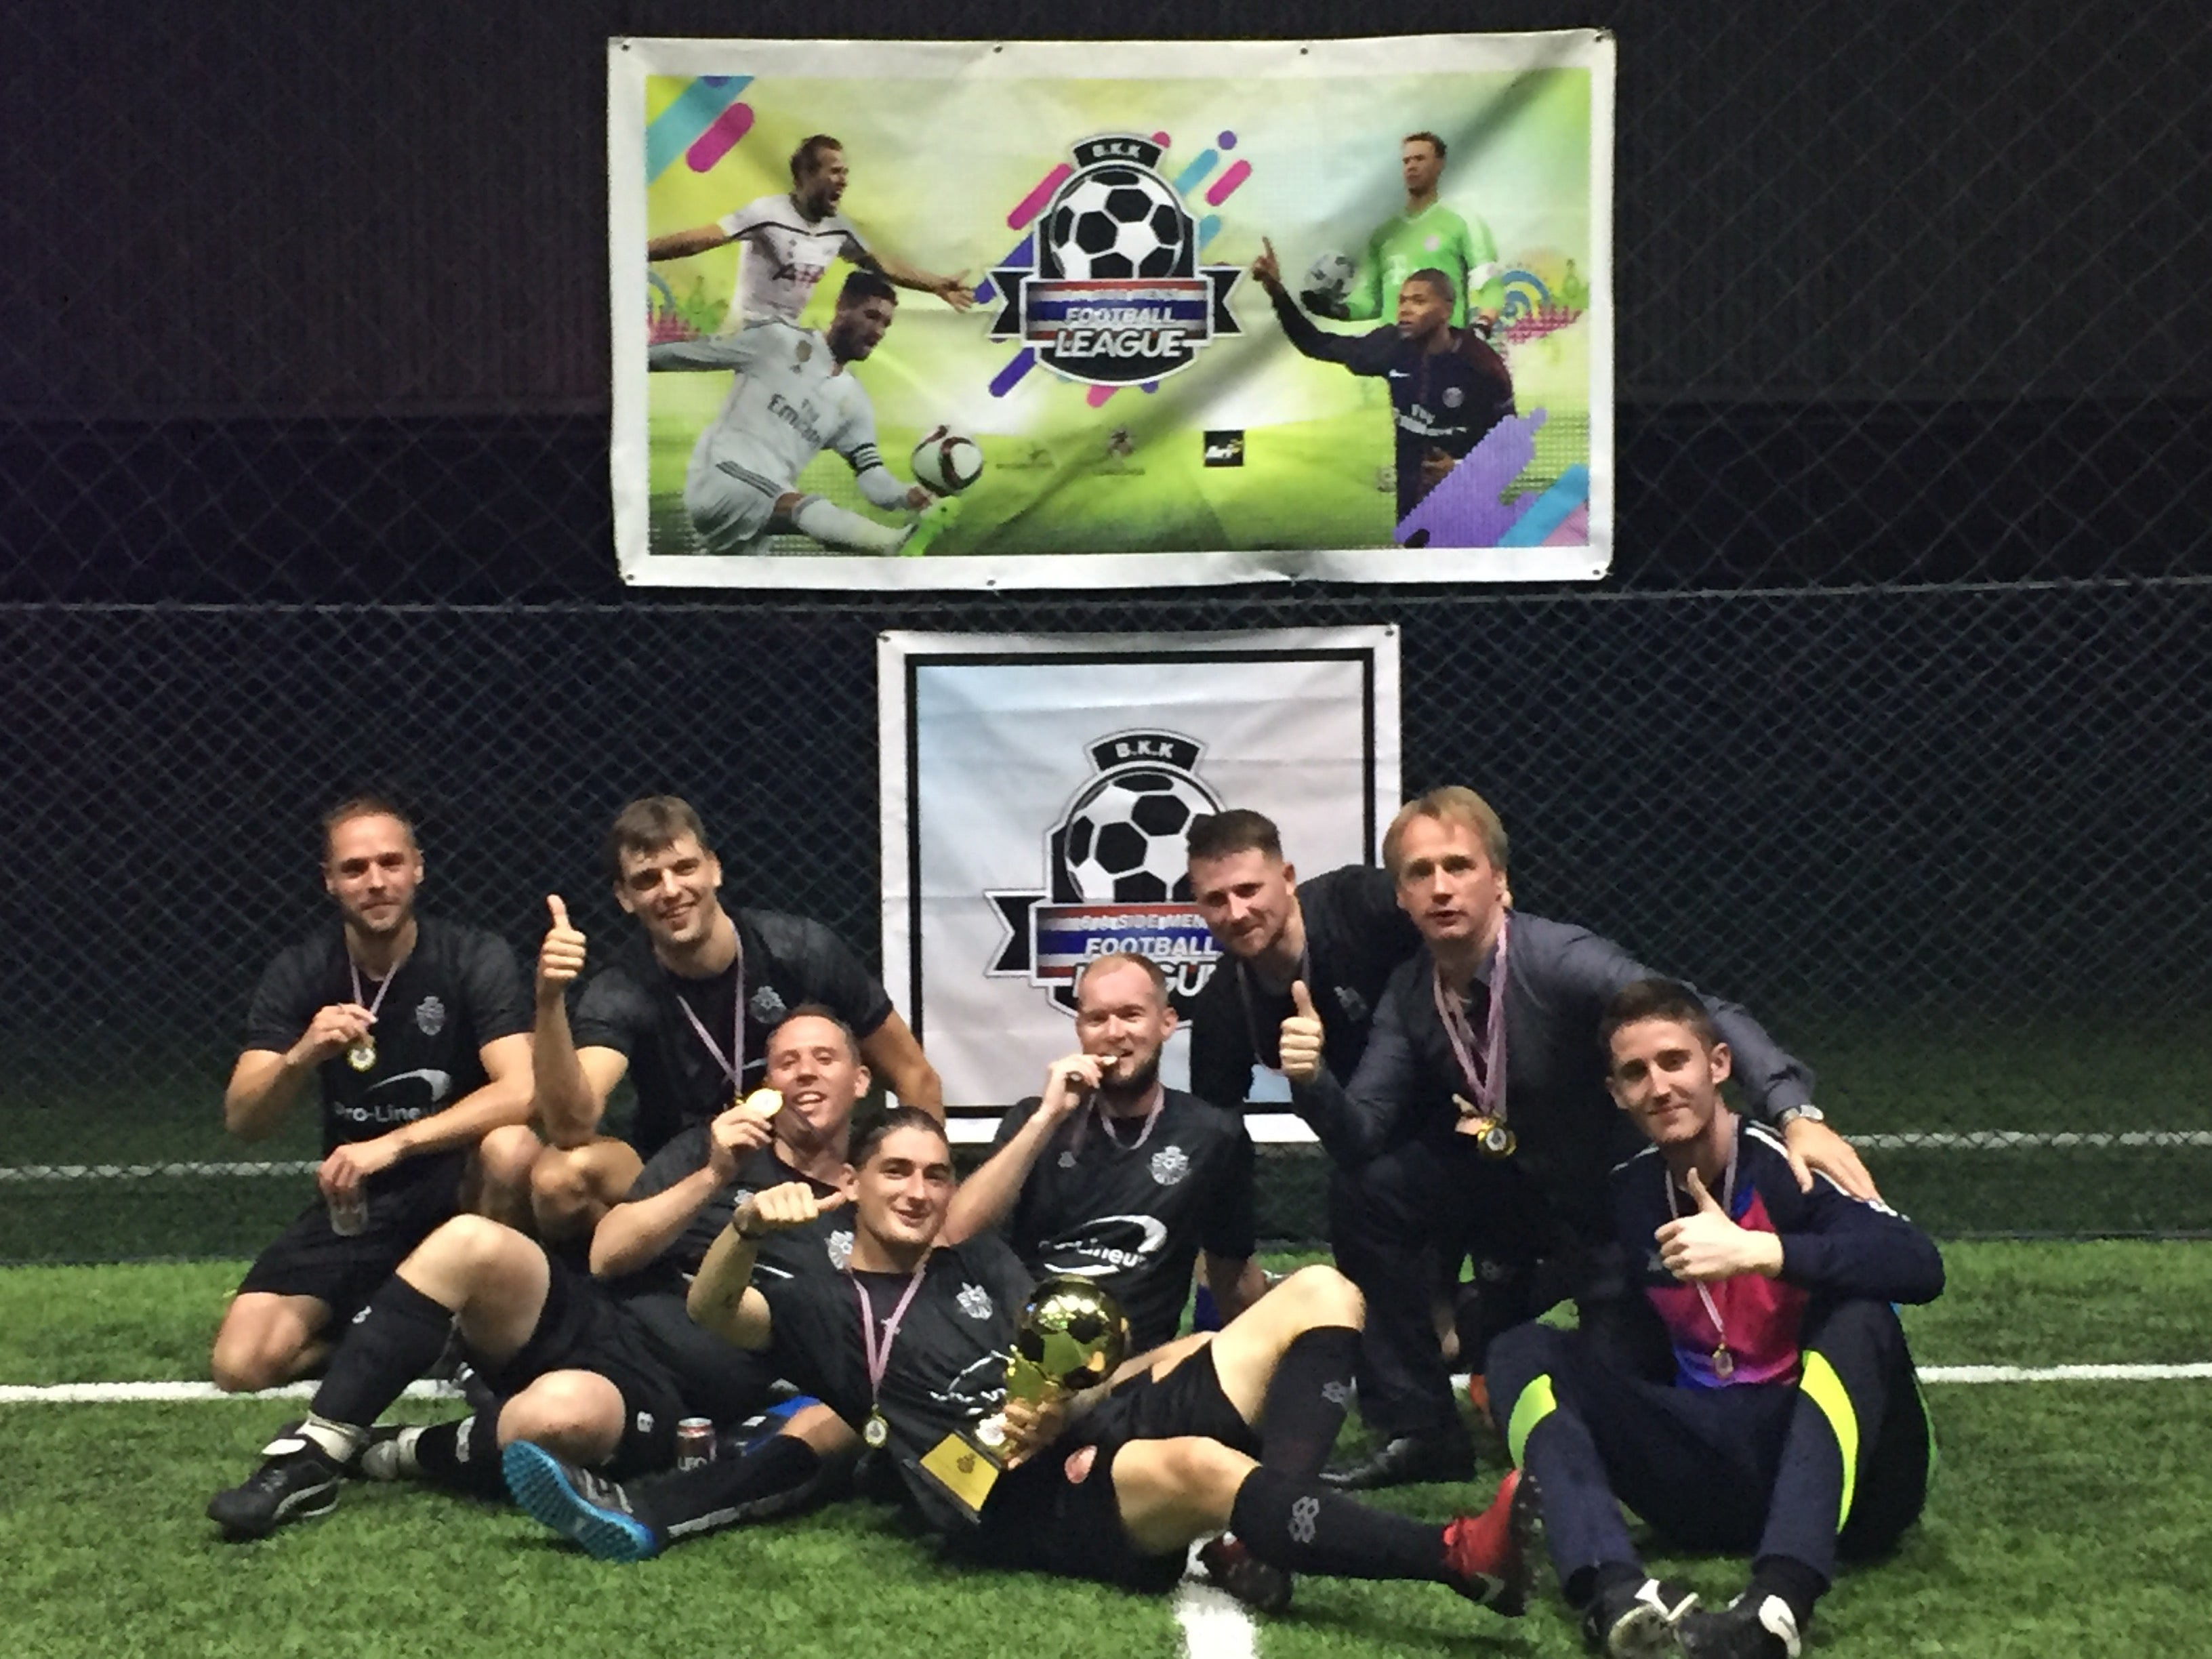 Pro-Lineup FC crowned champions